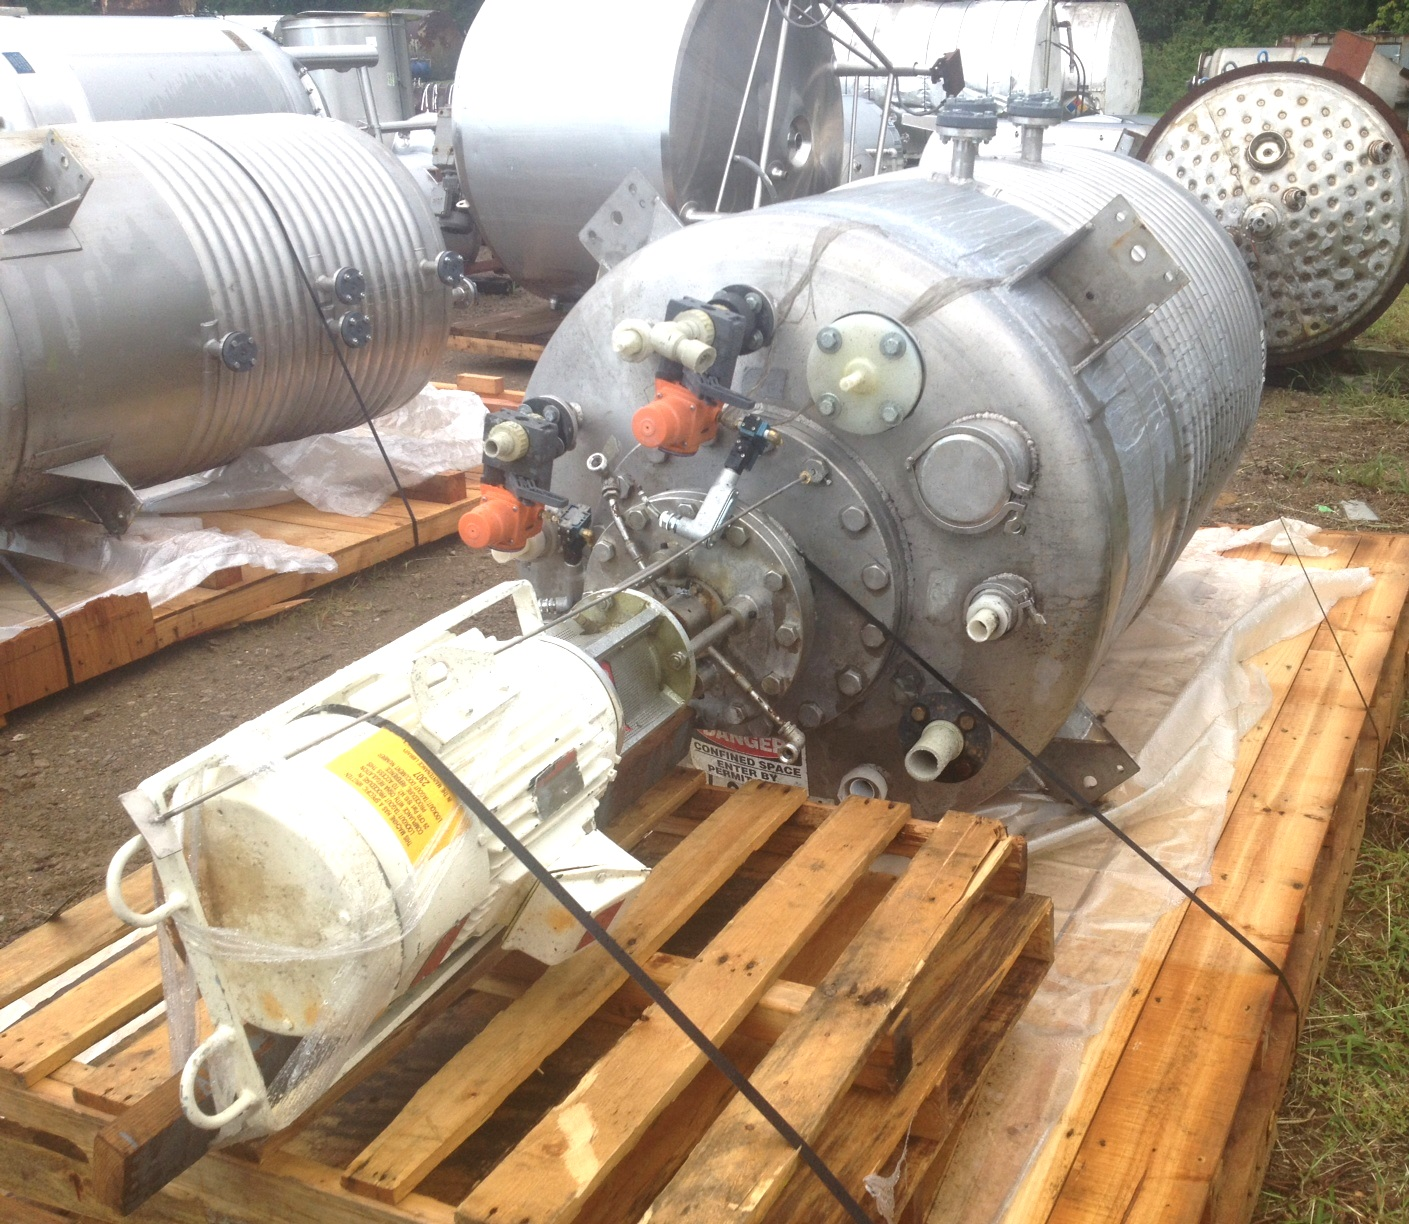 (2) EACH, 600 Gallon LEE 316L Stainless Reactor / Kettle with 1/2 Pipe jacket and High Speed Greerco Disperser. Polished internal Rated 15/FV @ 100 Deg.F. Internal and 100 PSI @ 338 Deg.F on Jacket. Has Greerco model 4HRFM 96,  15 HP, 230/460 volt, 3525 RPM Disperser. 2.5